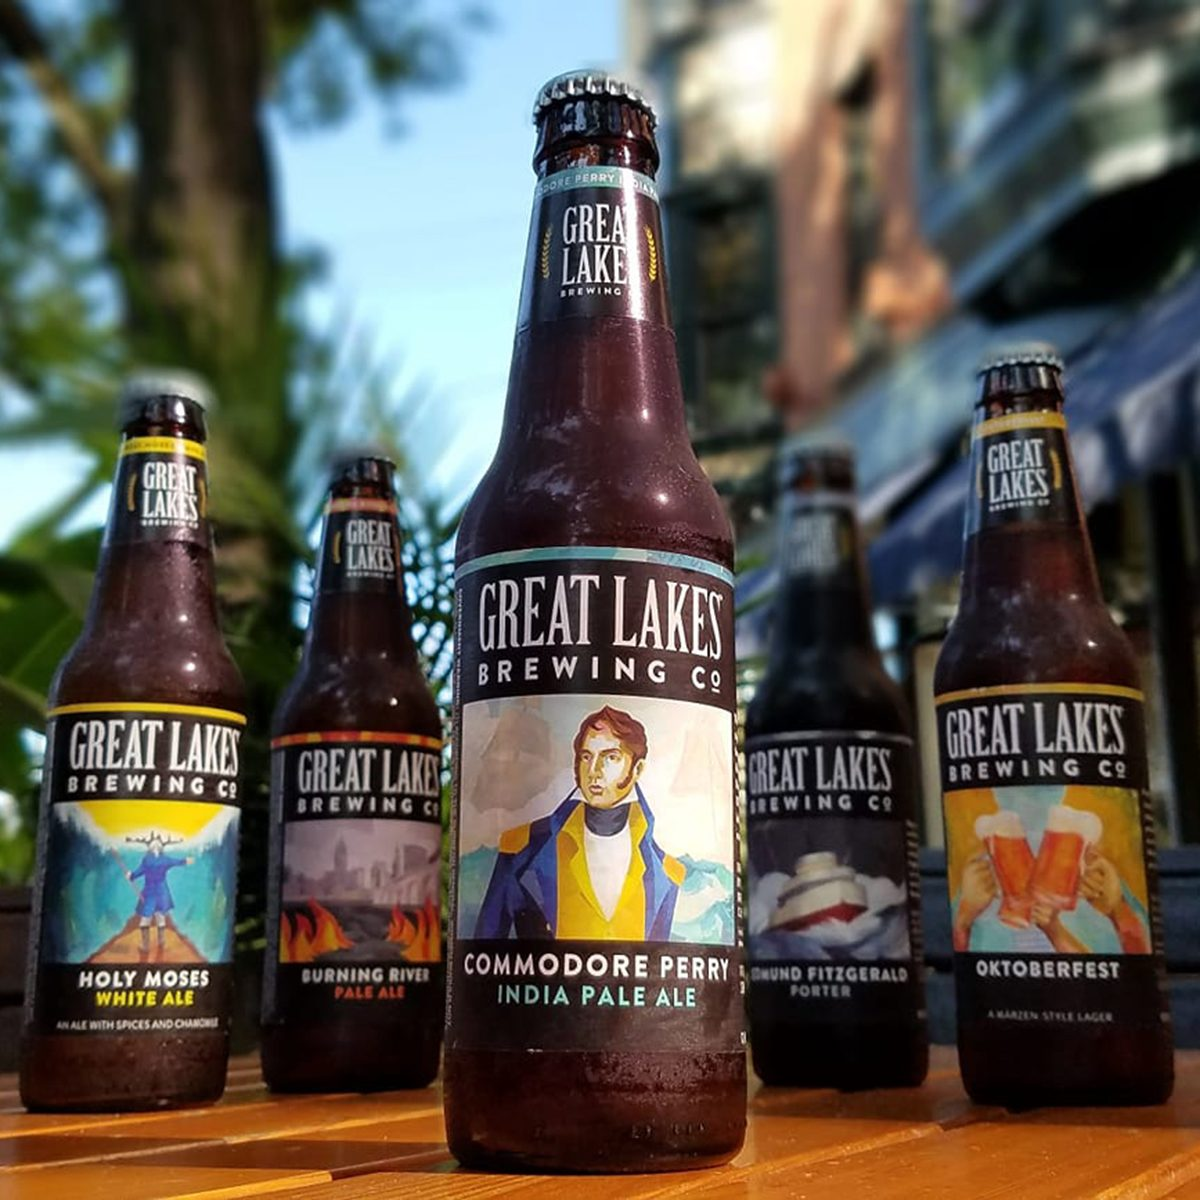 Great Lakes Brewing's Commodore Perry